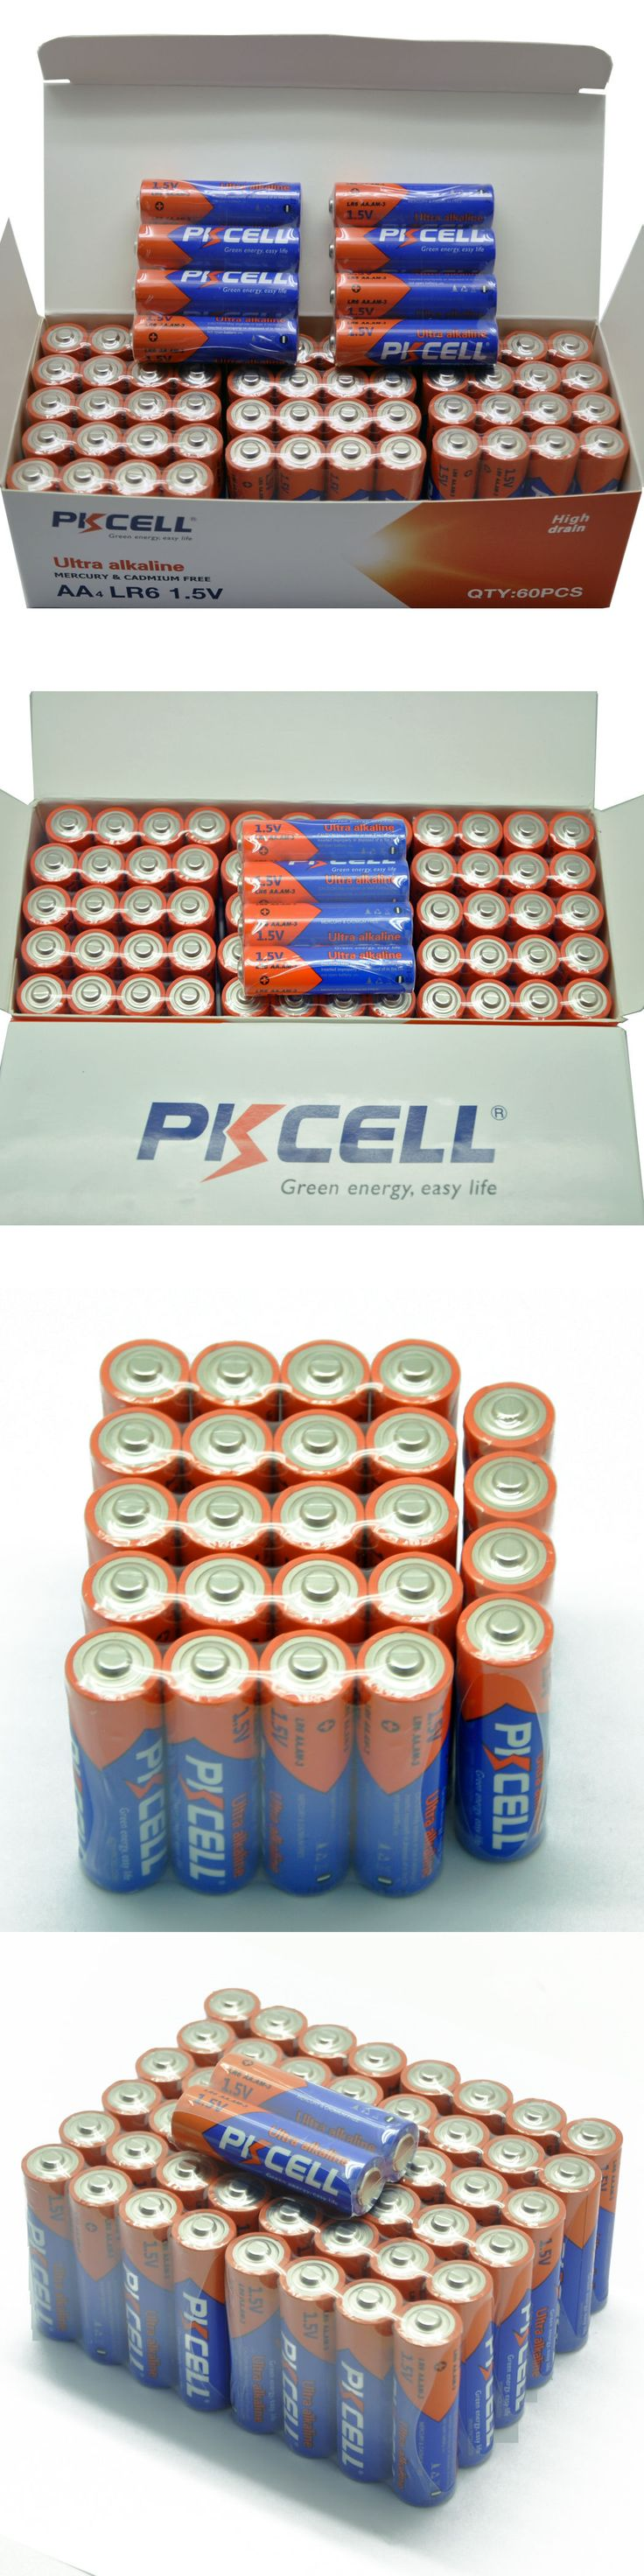 Batteries and Power Accessories: 200Pcs Aa Lr6 1.5V Alkaline Dry Batteries For Mp3 Toys Camera Remote Pkcell BUY IT NOW ONLY: $42.74